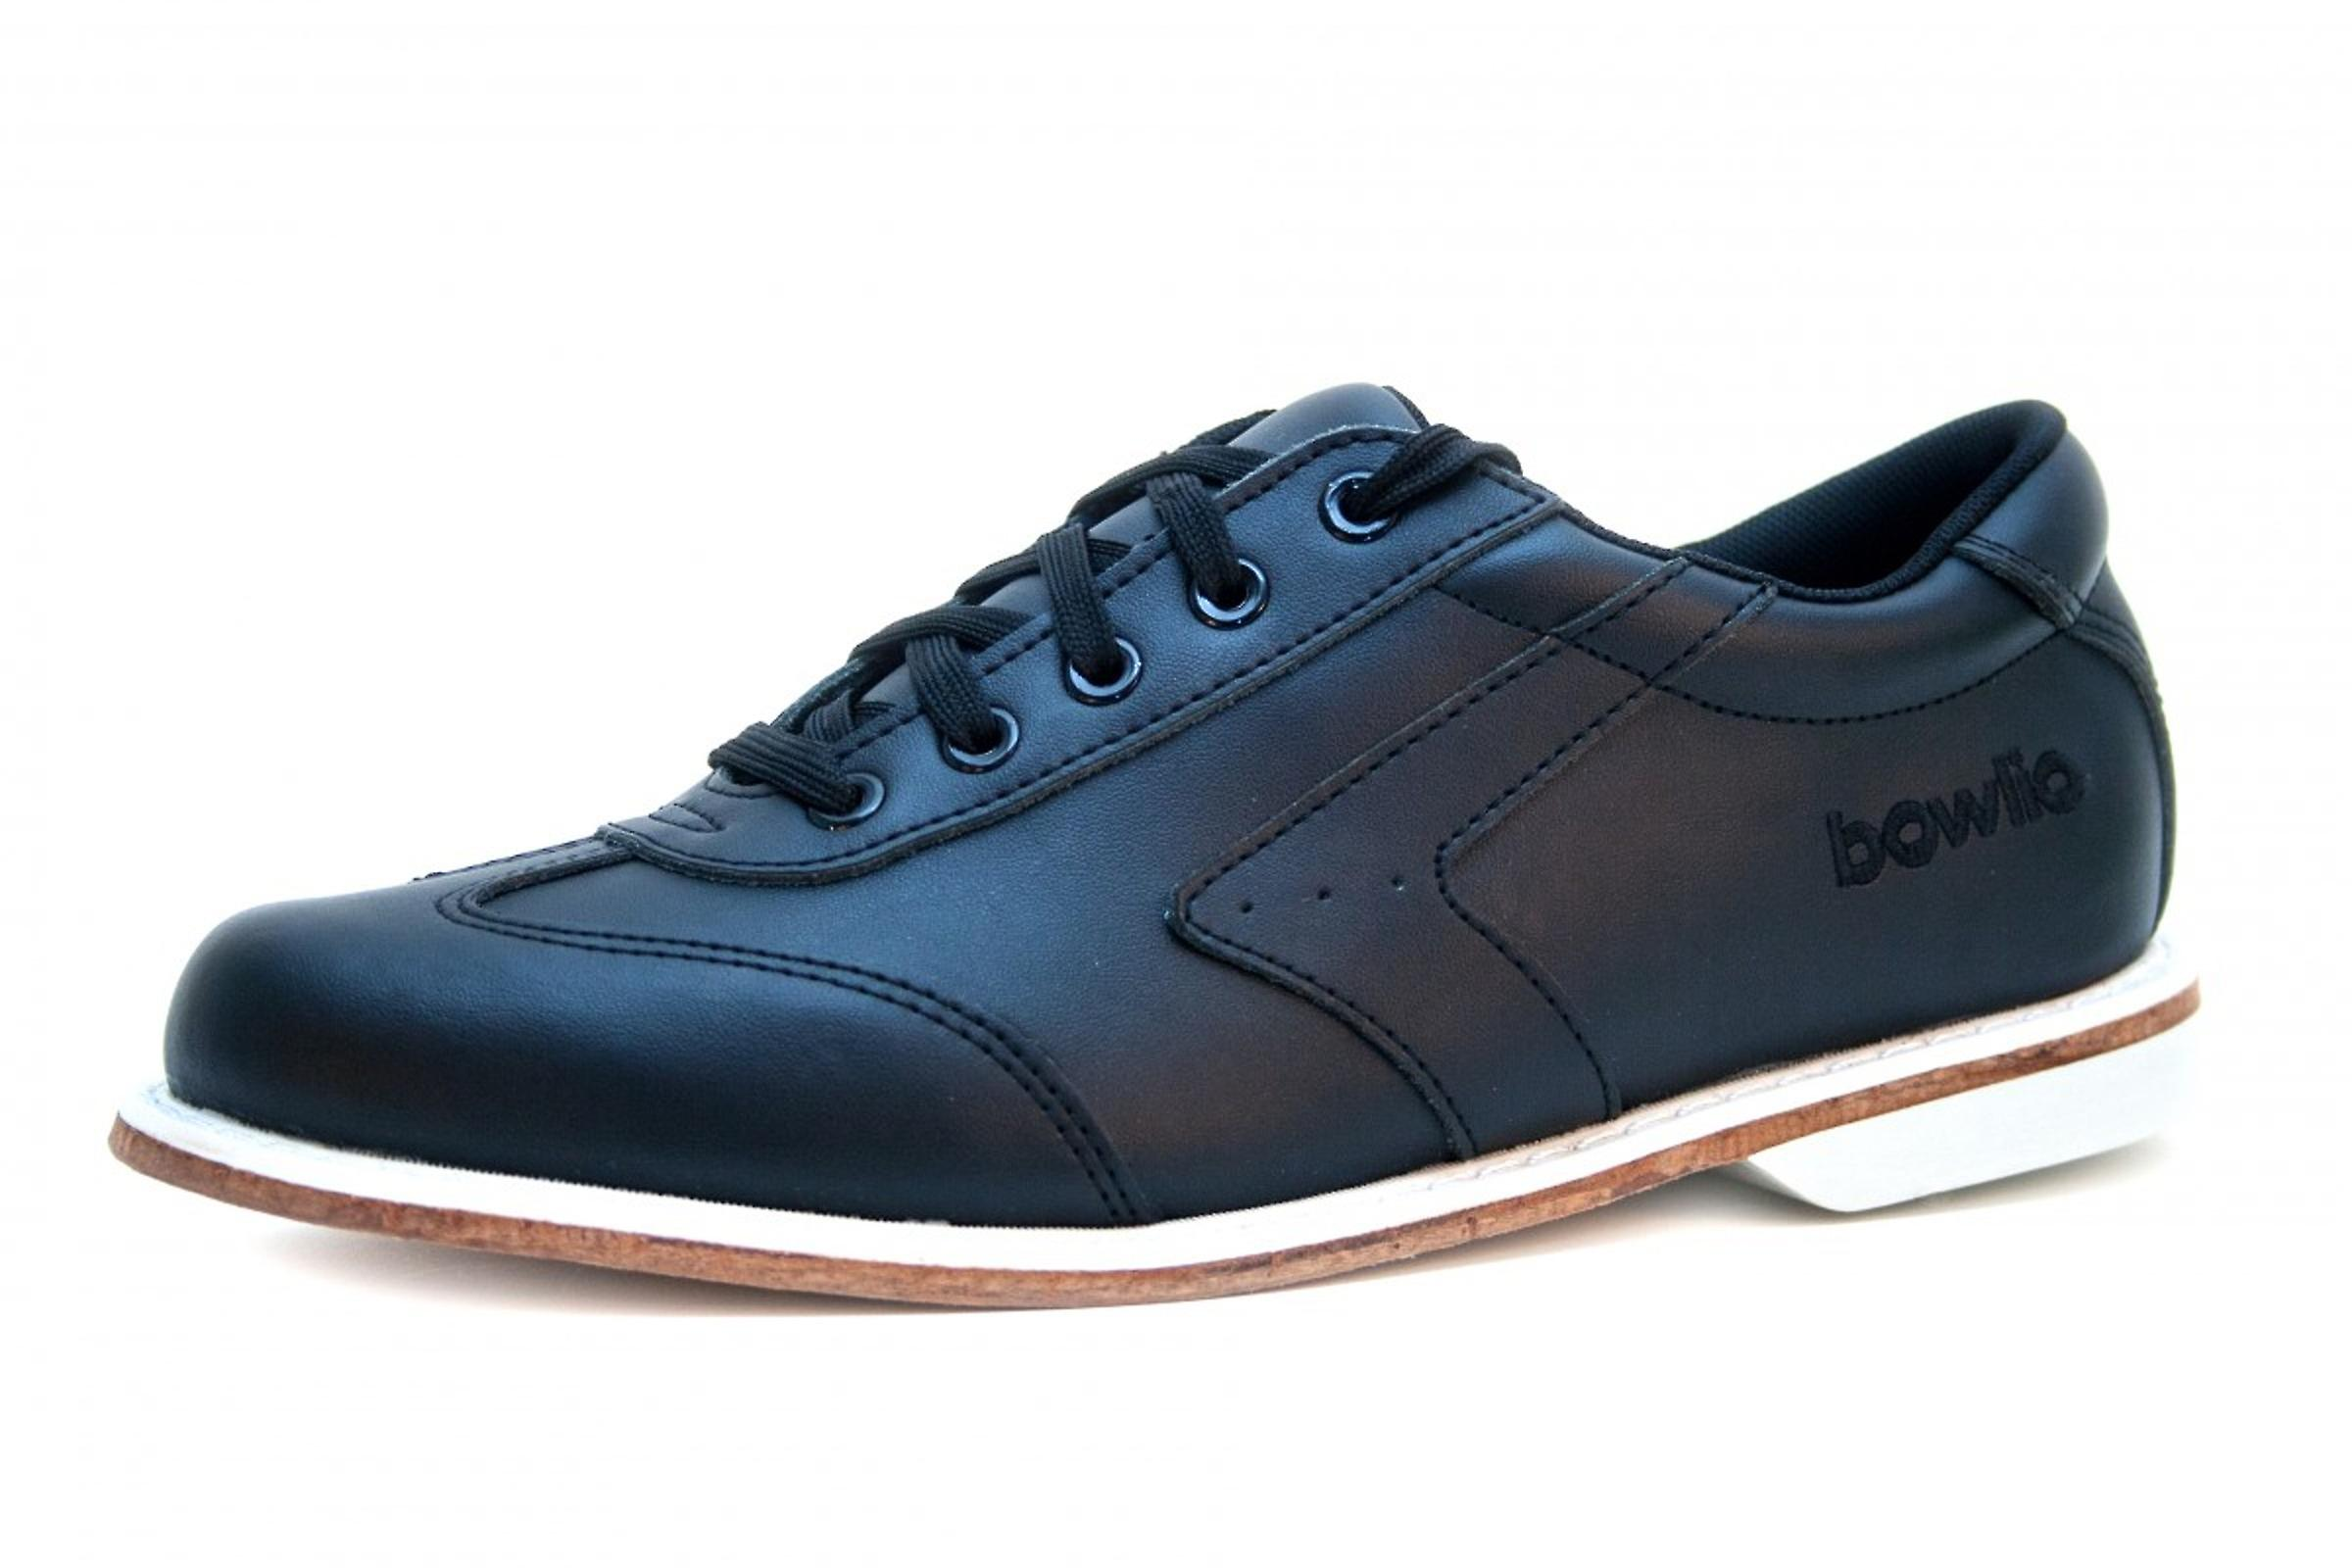 Bowling shoes - Bowlio Nero - leather with leather sole